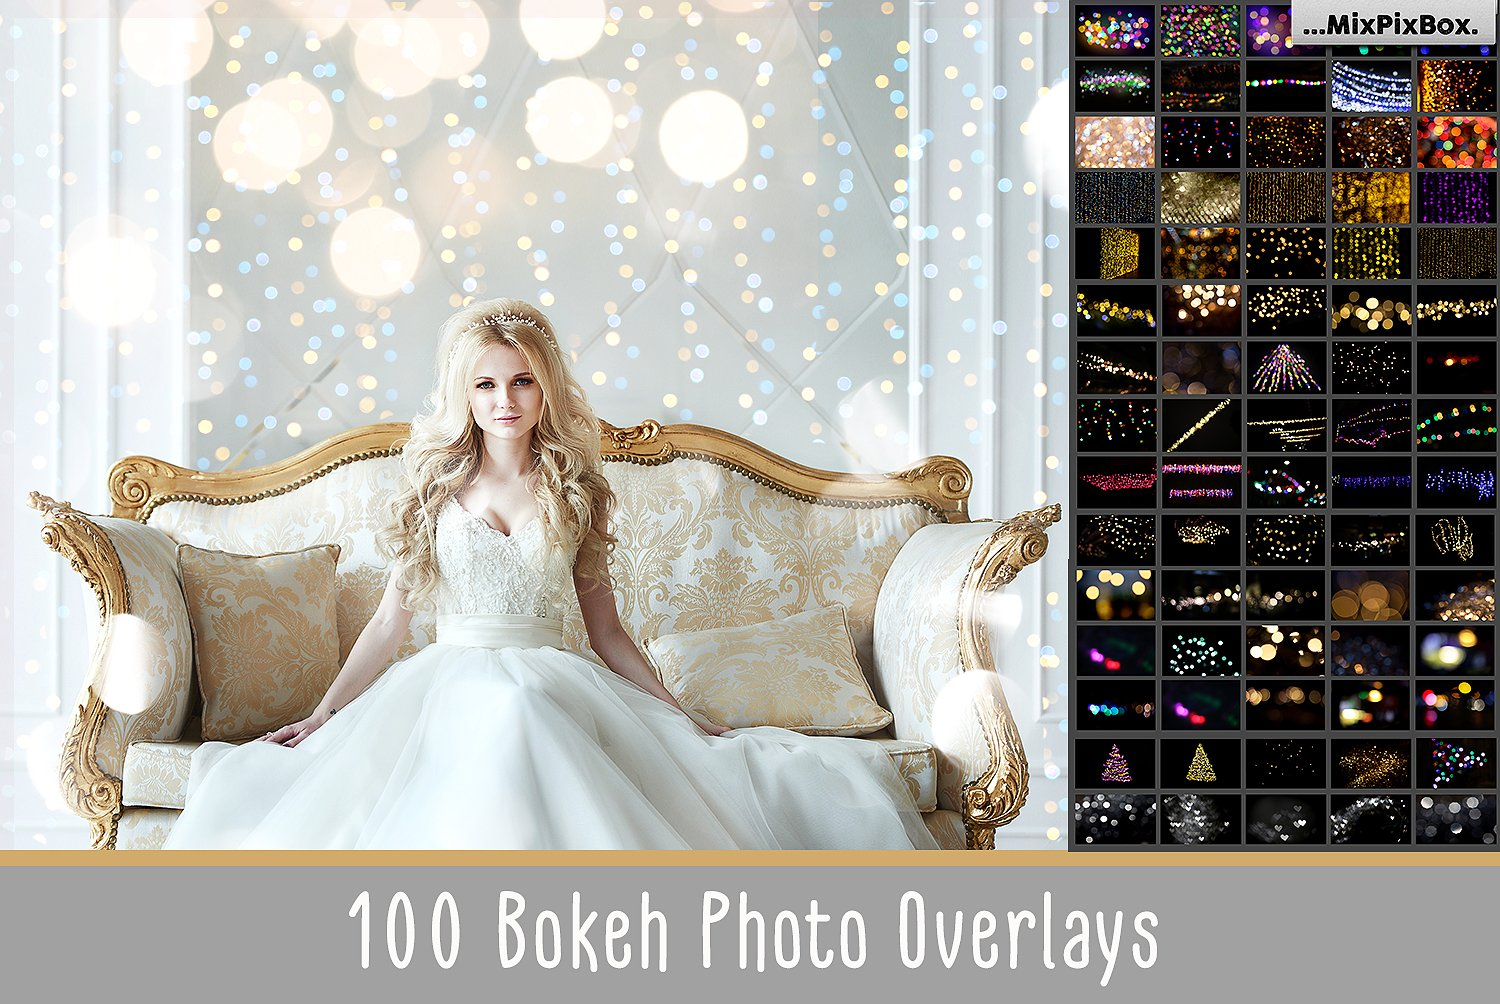 100 Bokeh Photo Overlays - $9 - cover 3